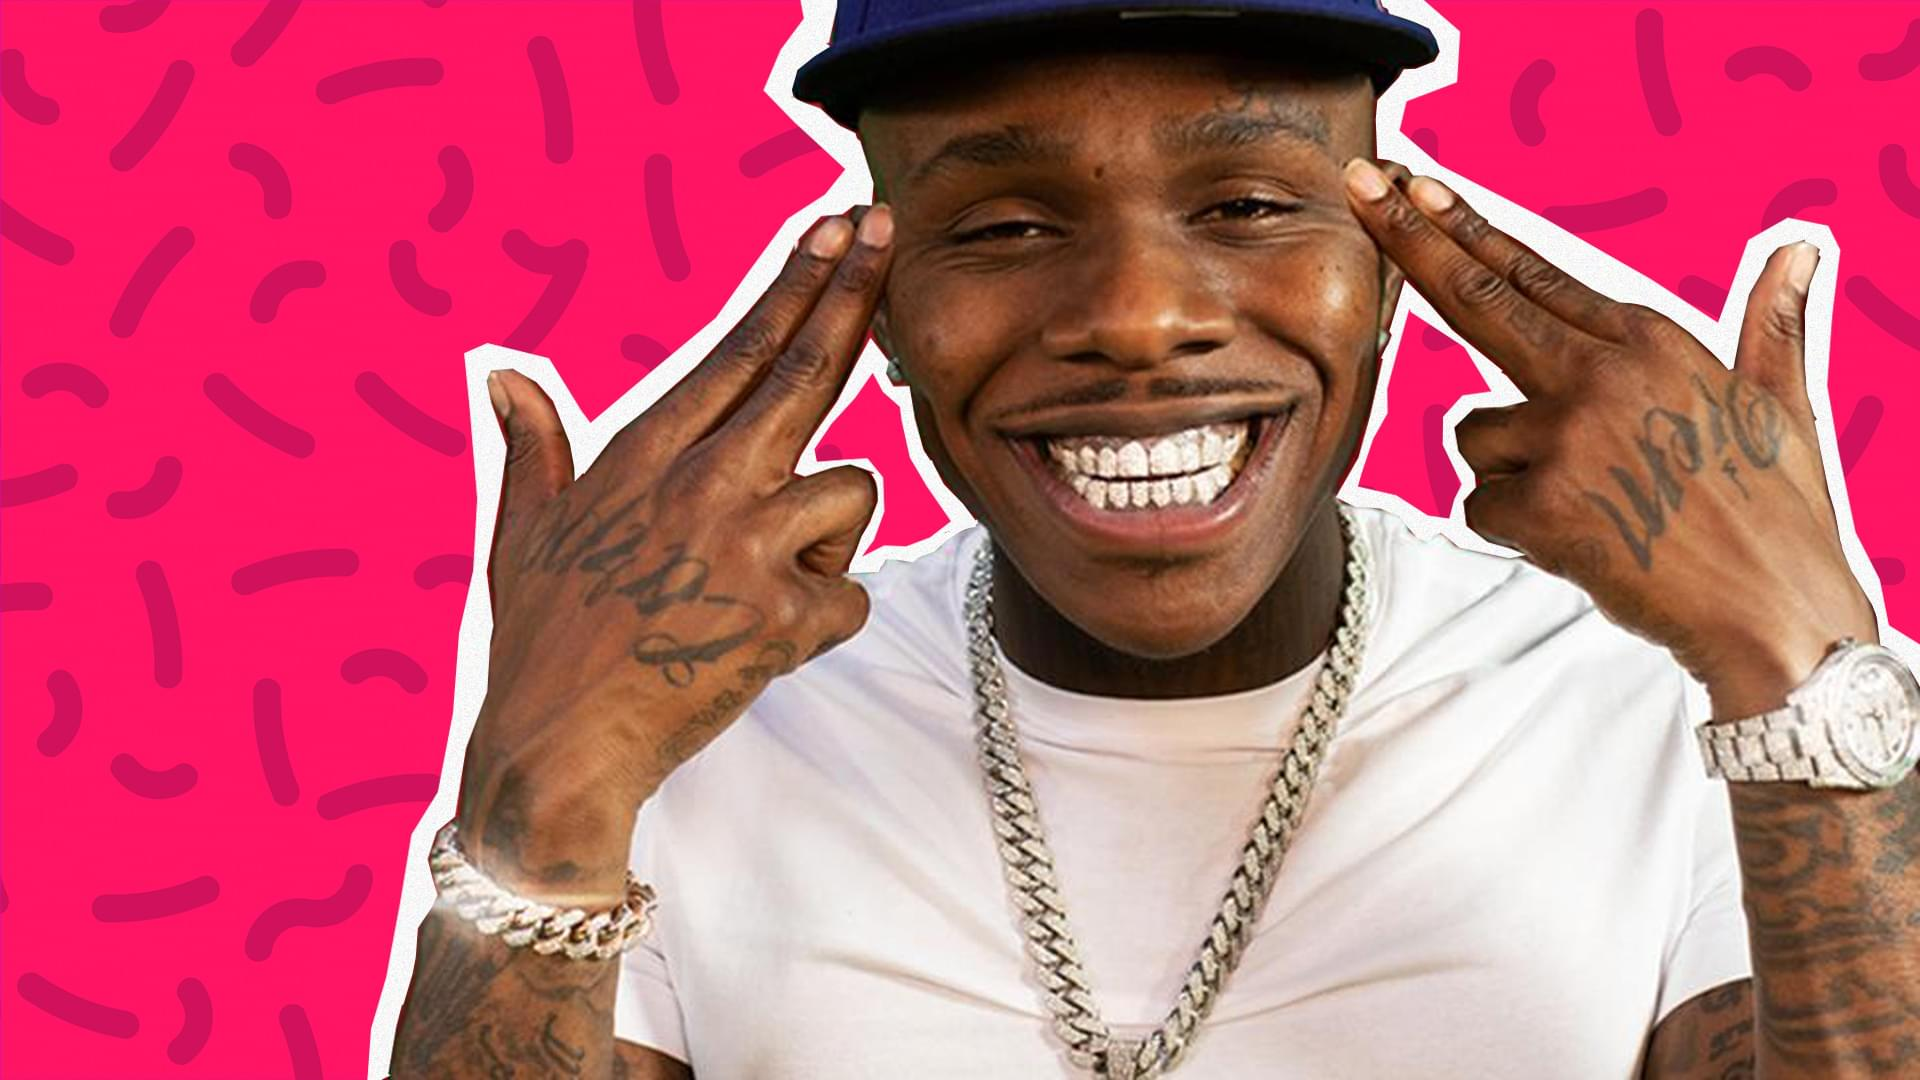 dababy rapper wallpapers